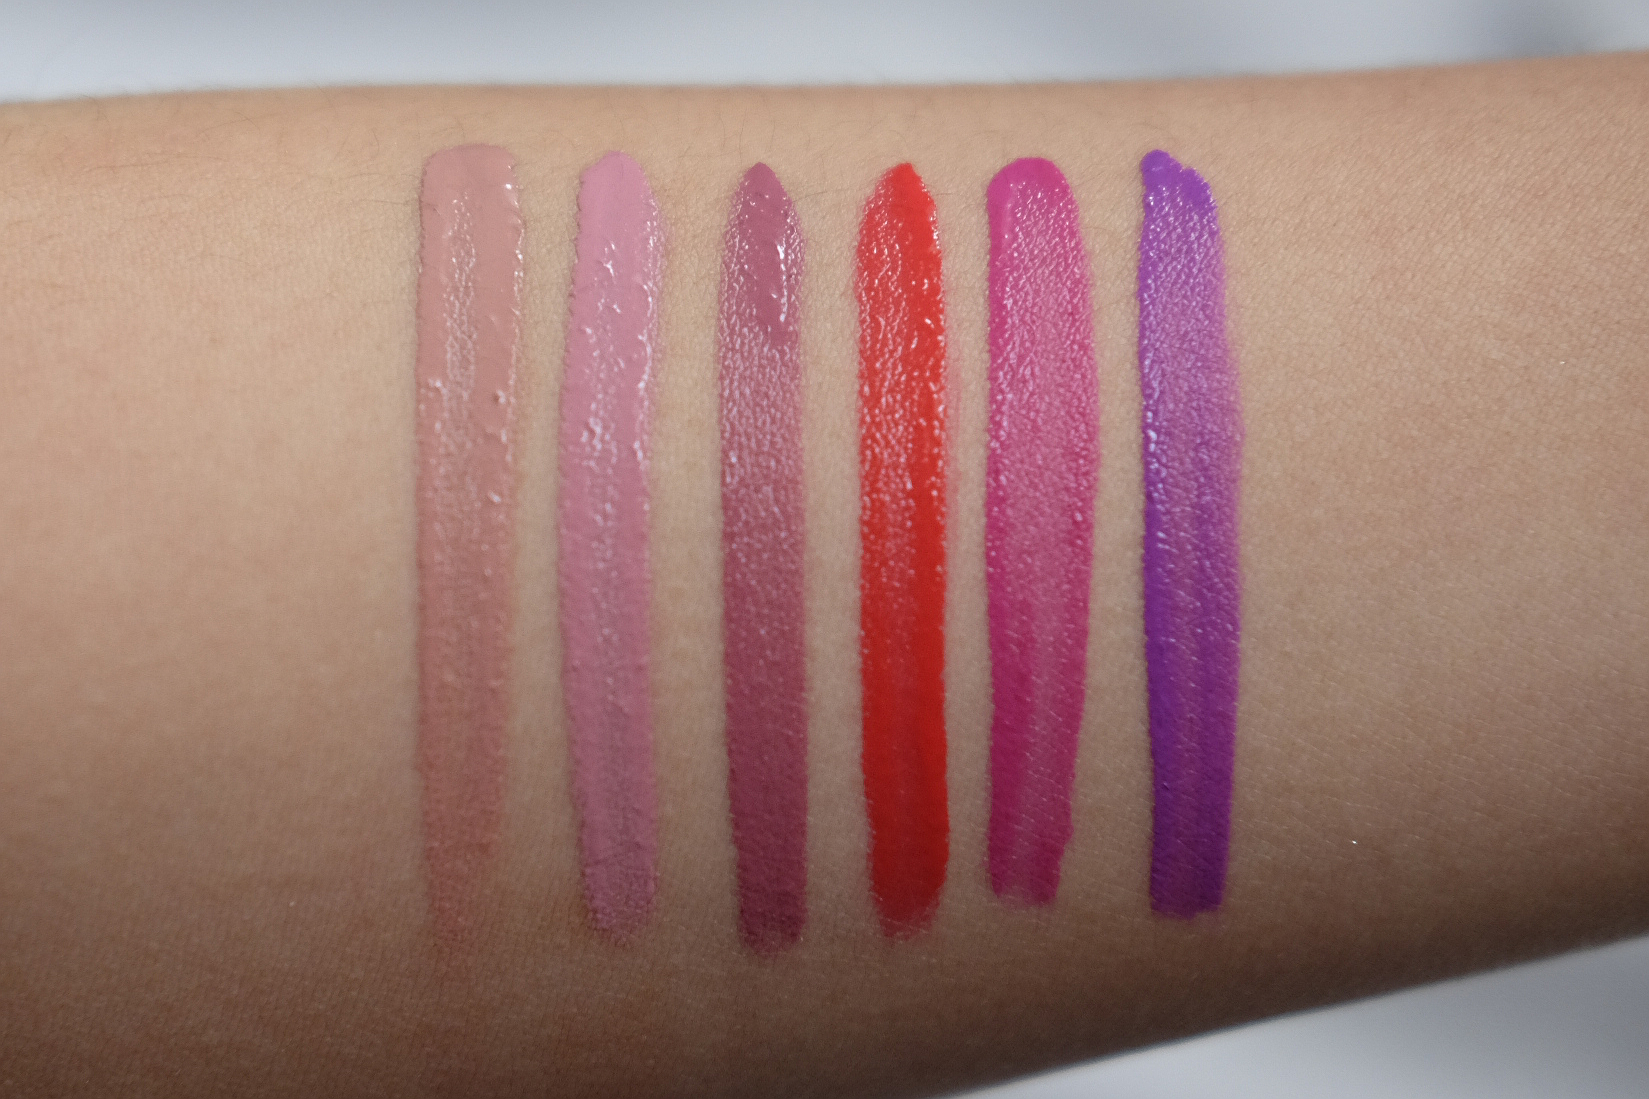 Maybelline Superstay Matte Ink Liquid Lipsticks Stephanie Lau